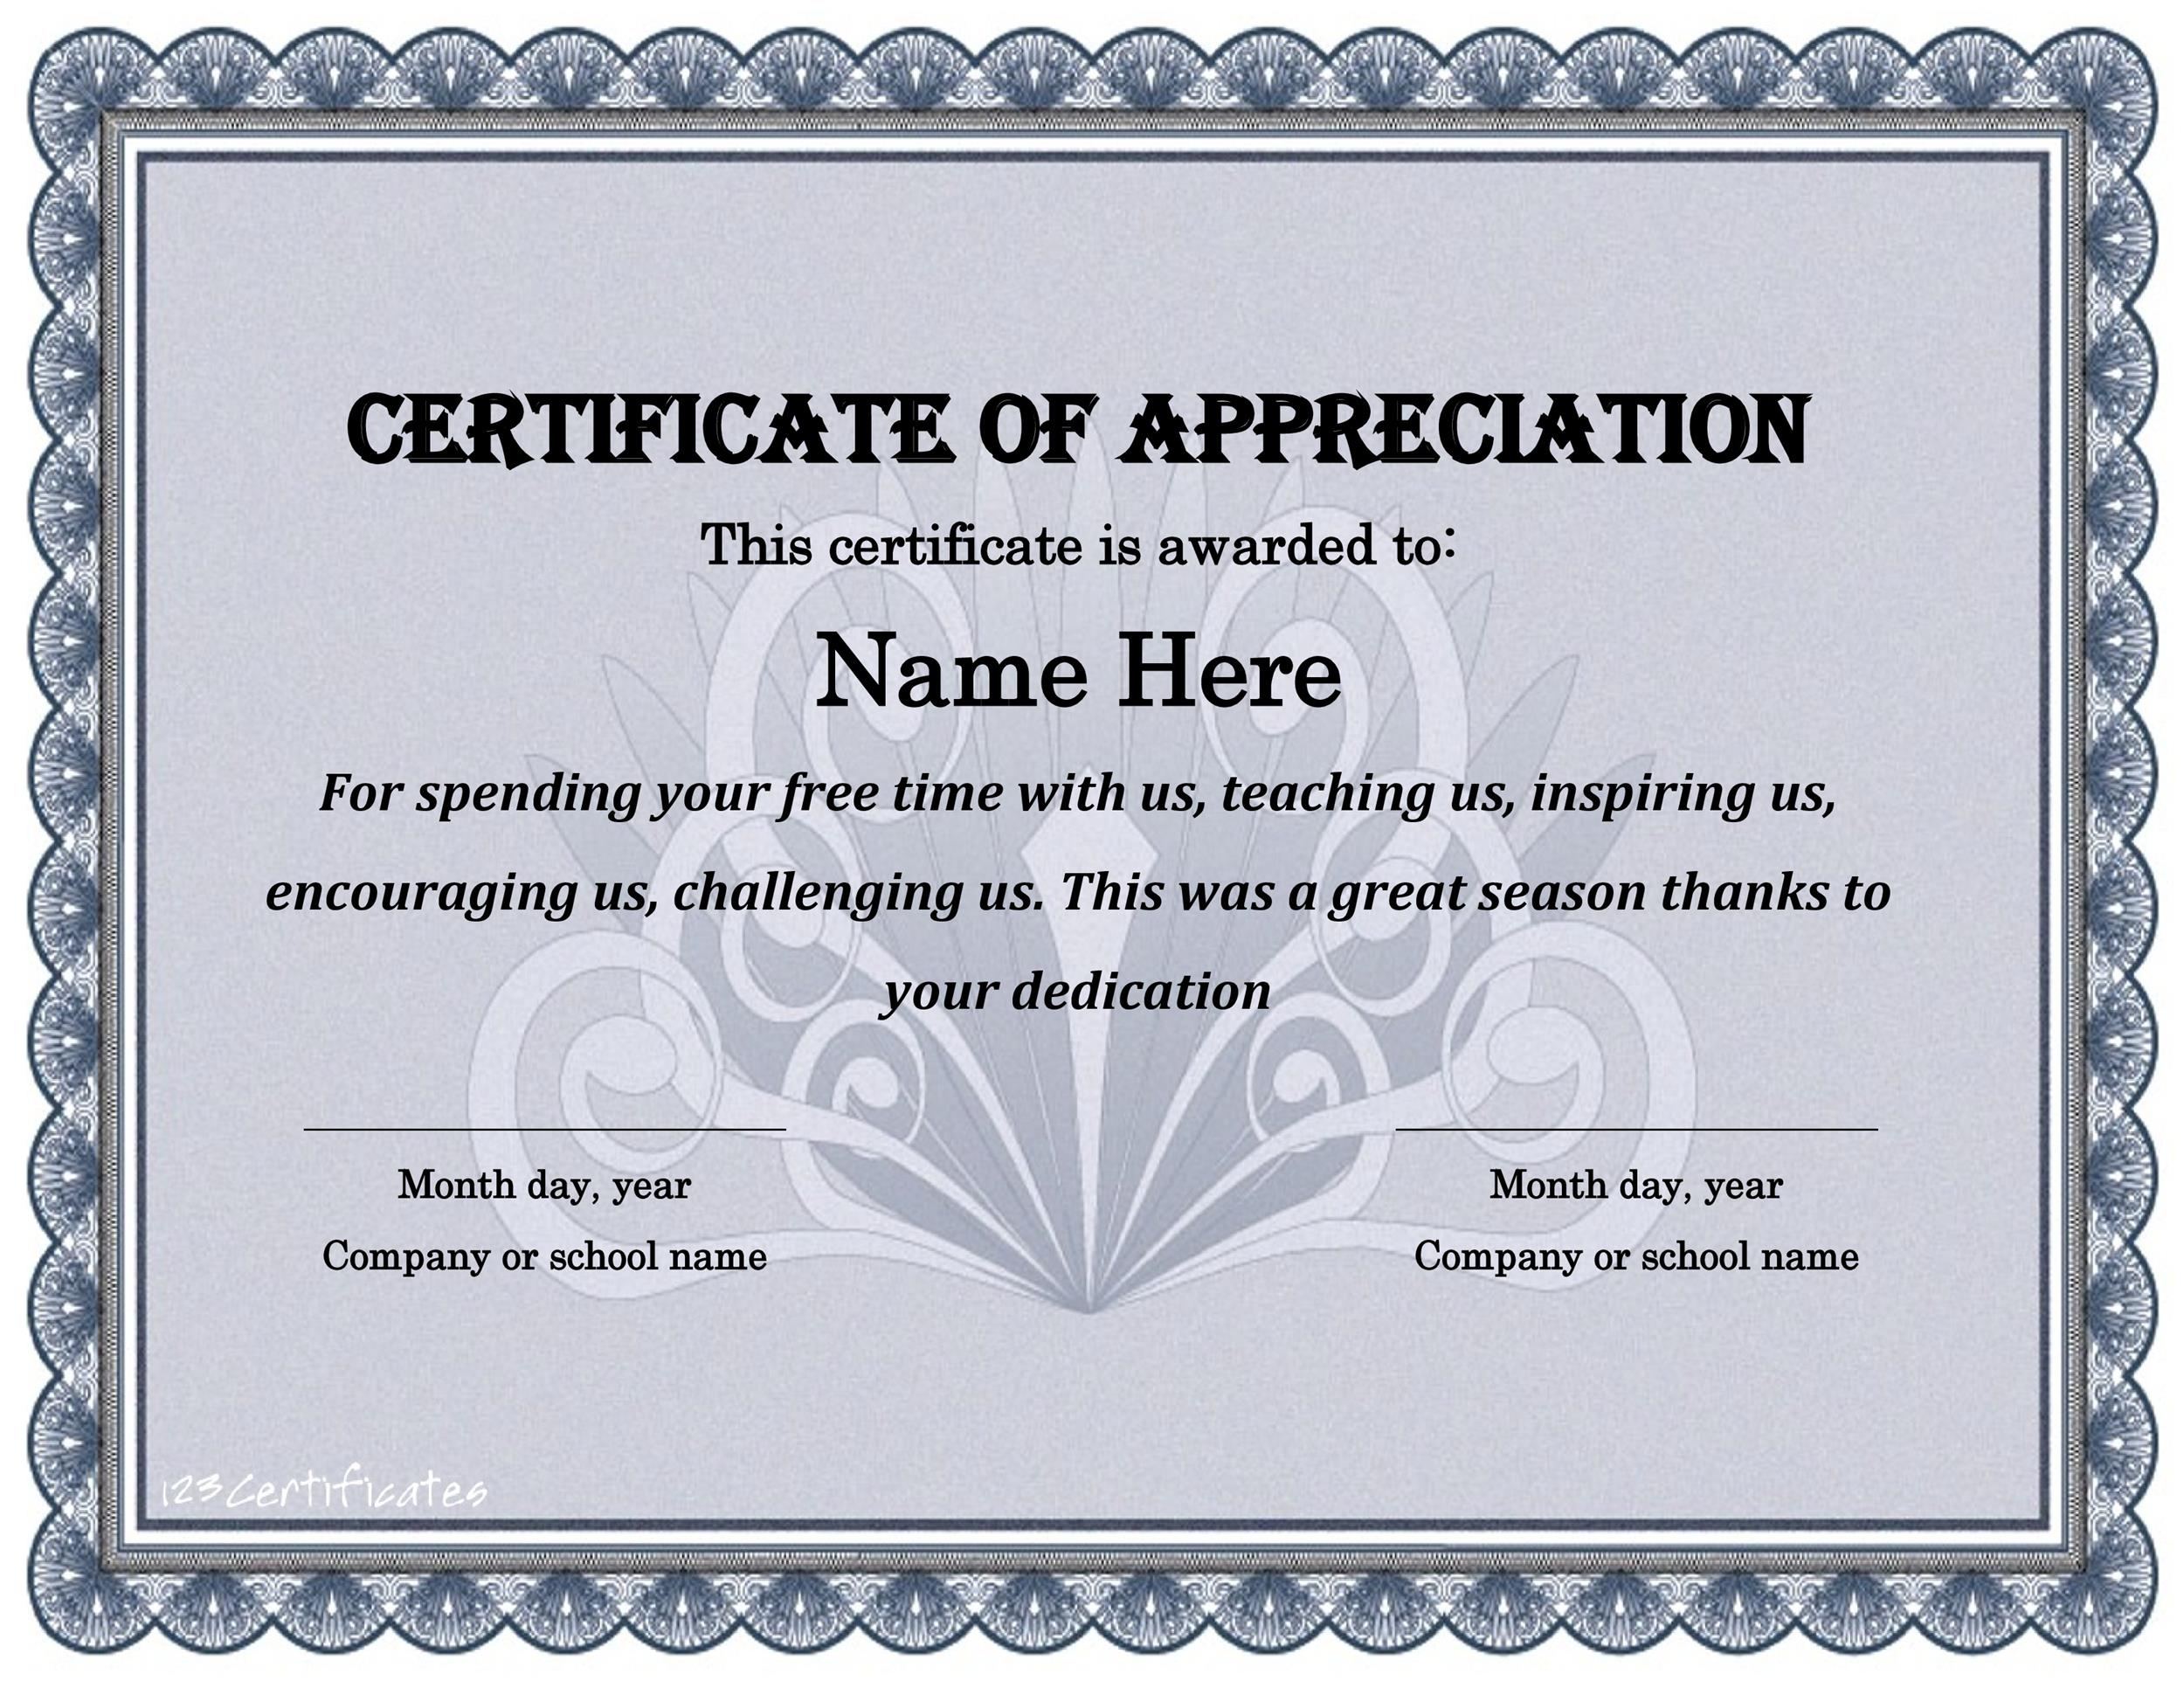 30 free certificate of appreciation templates and letters printable certificate of appreciation 21 yadclub Gallery